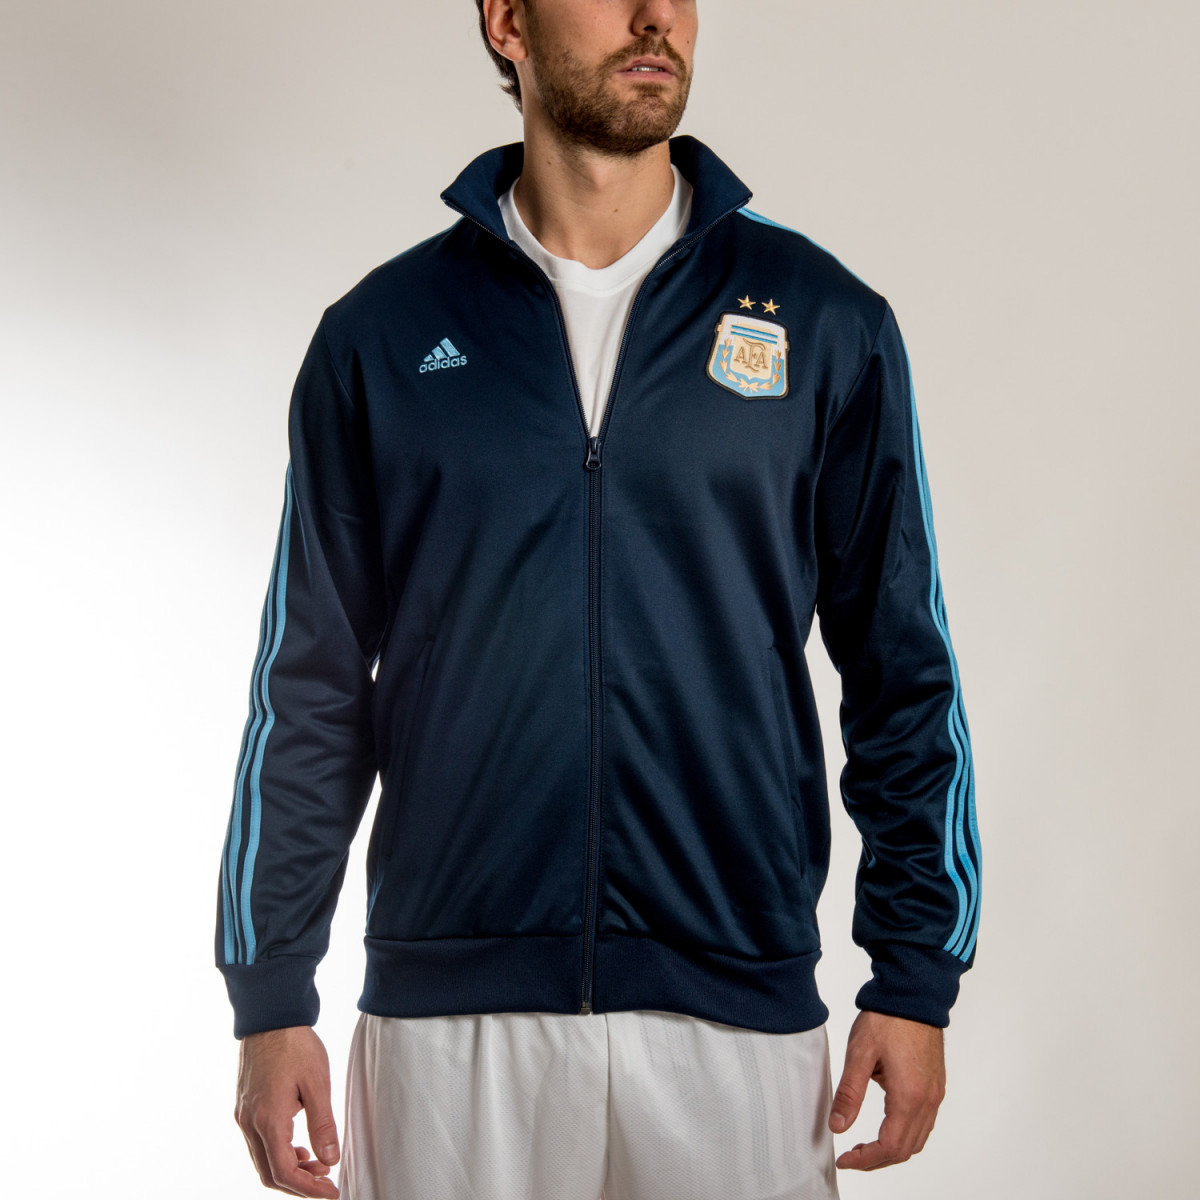 CAMPERA ADIDAS AFA TRK TOP 2014